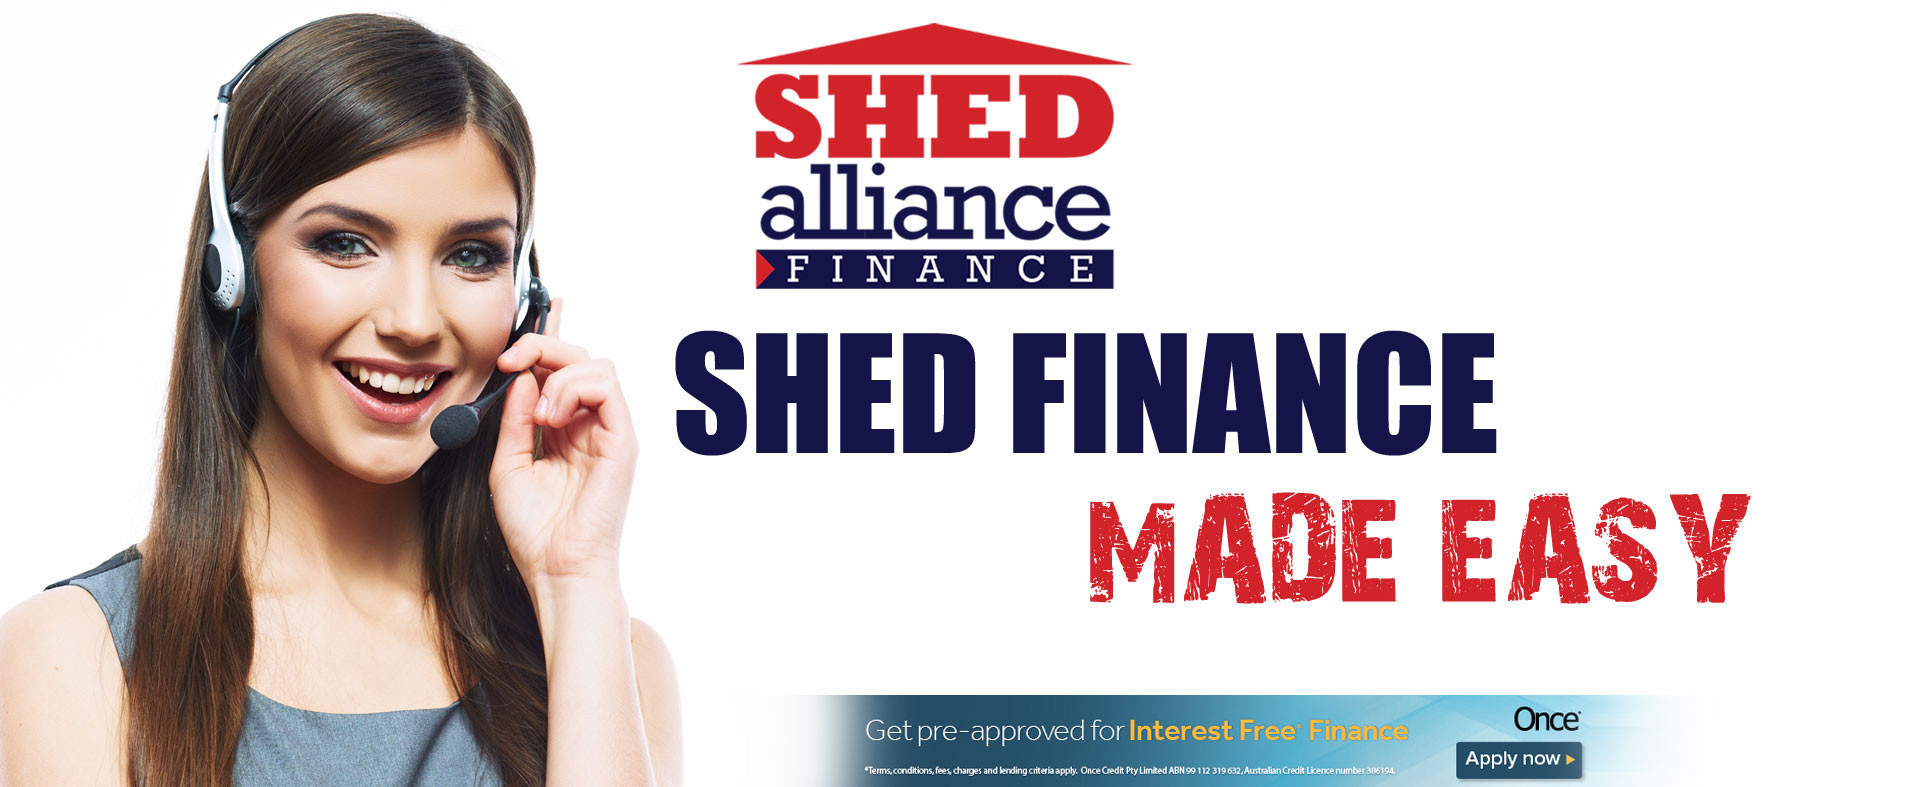 Shed Alliance Finance